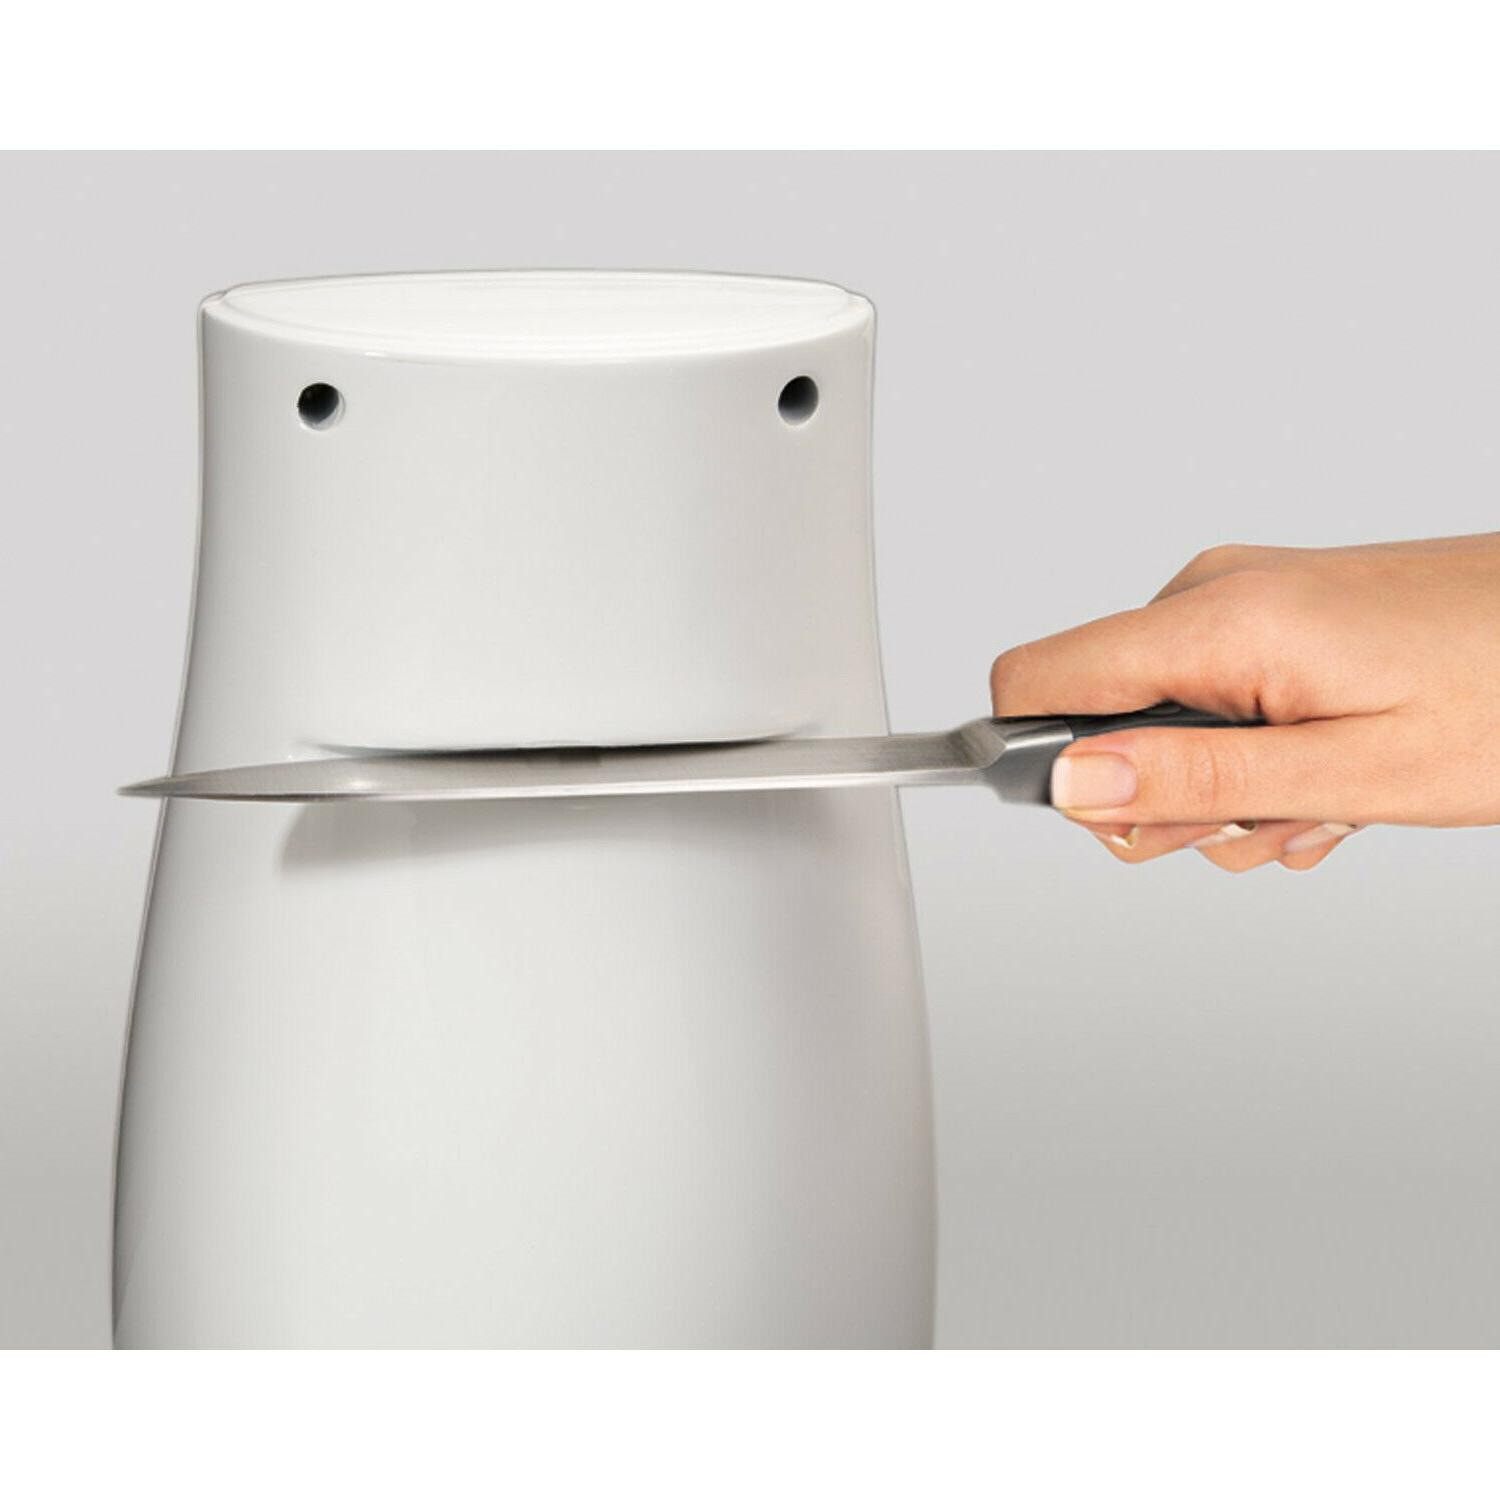 Electric Knife Tall Cans Automatic